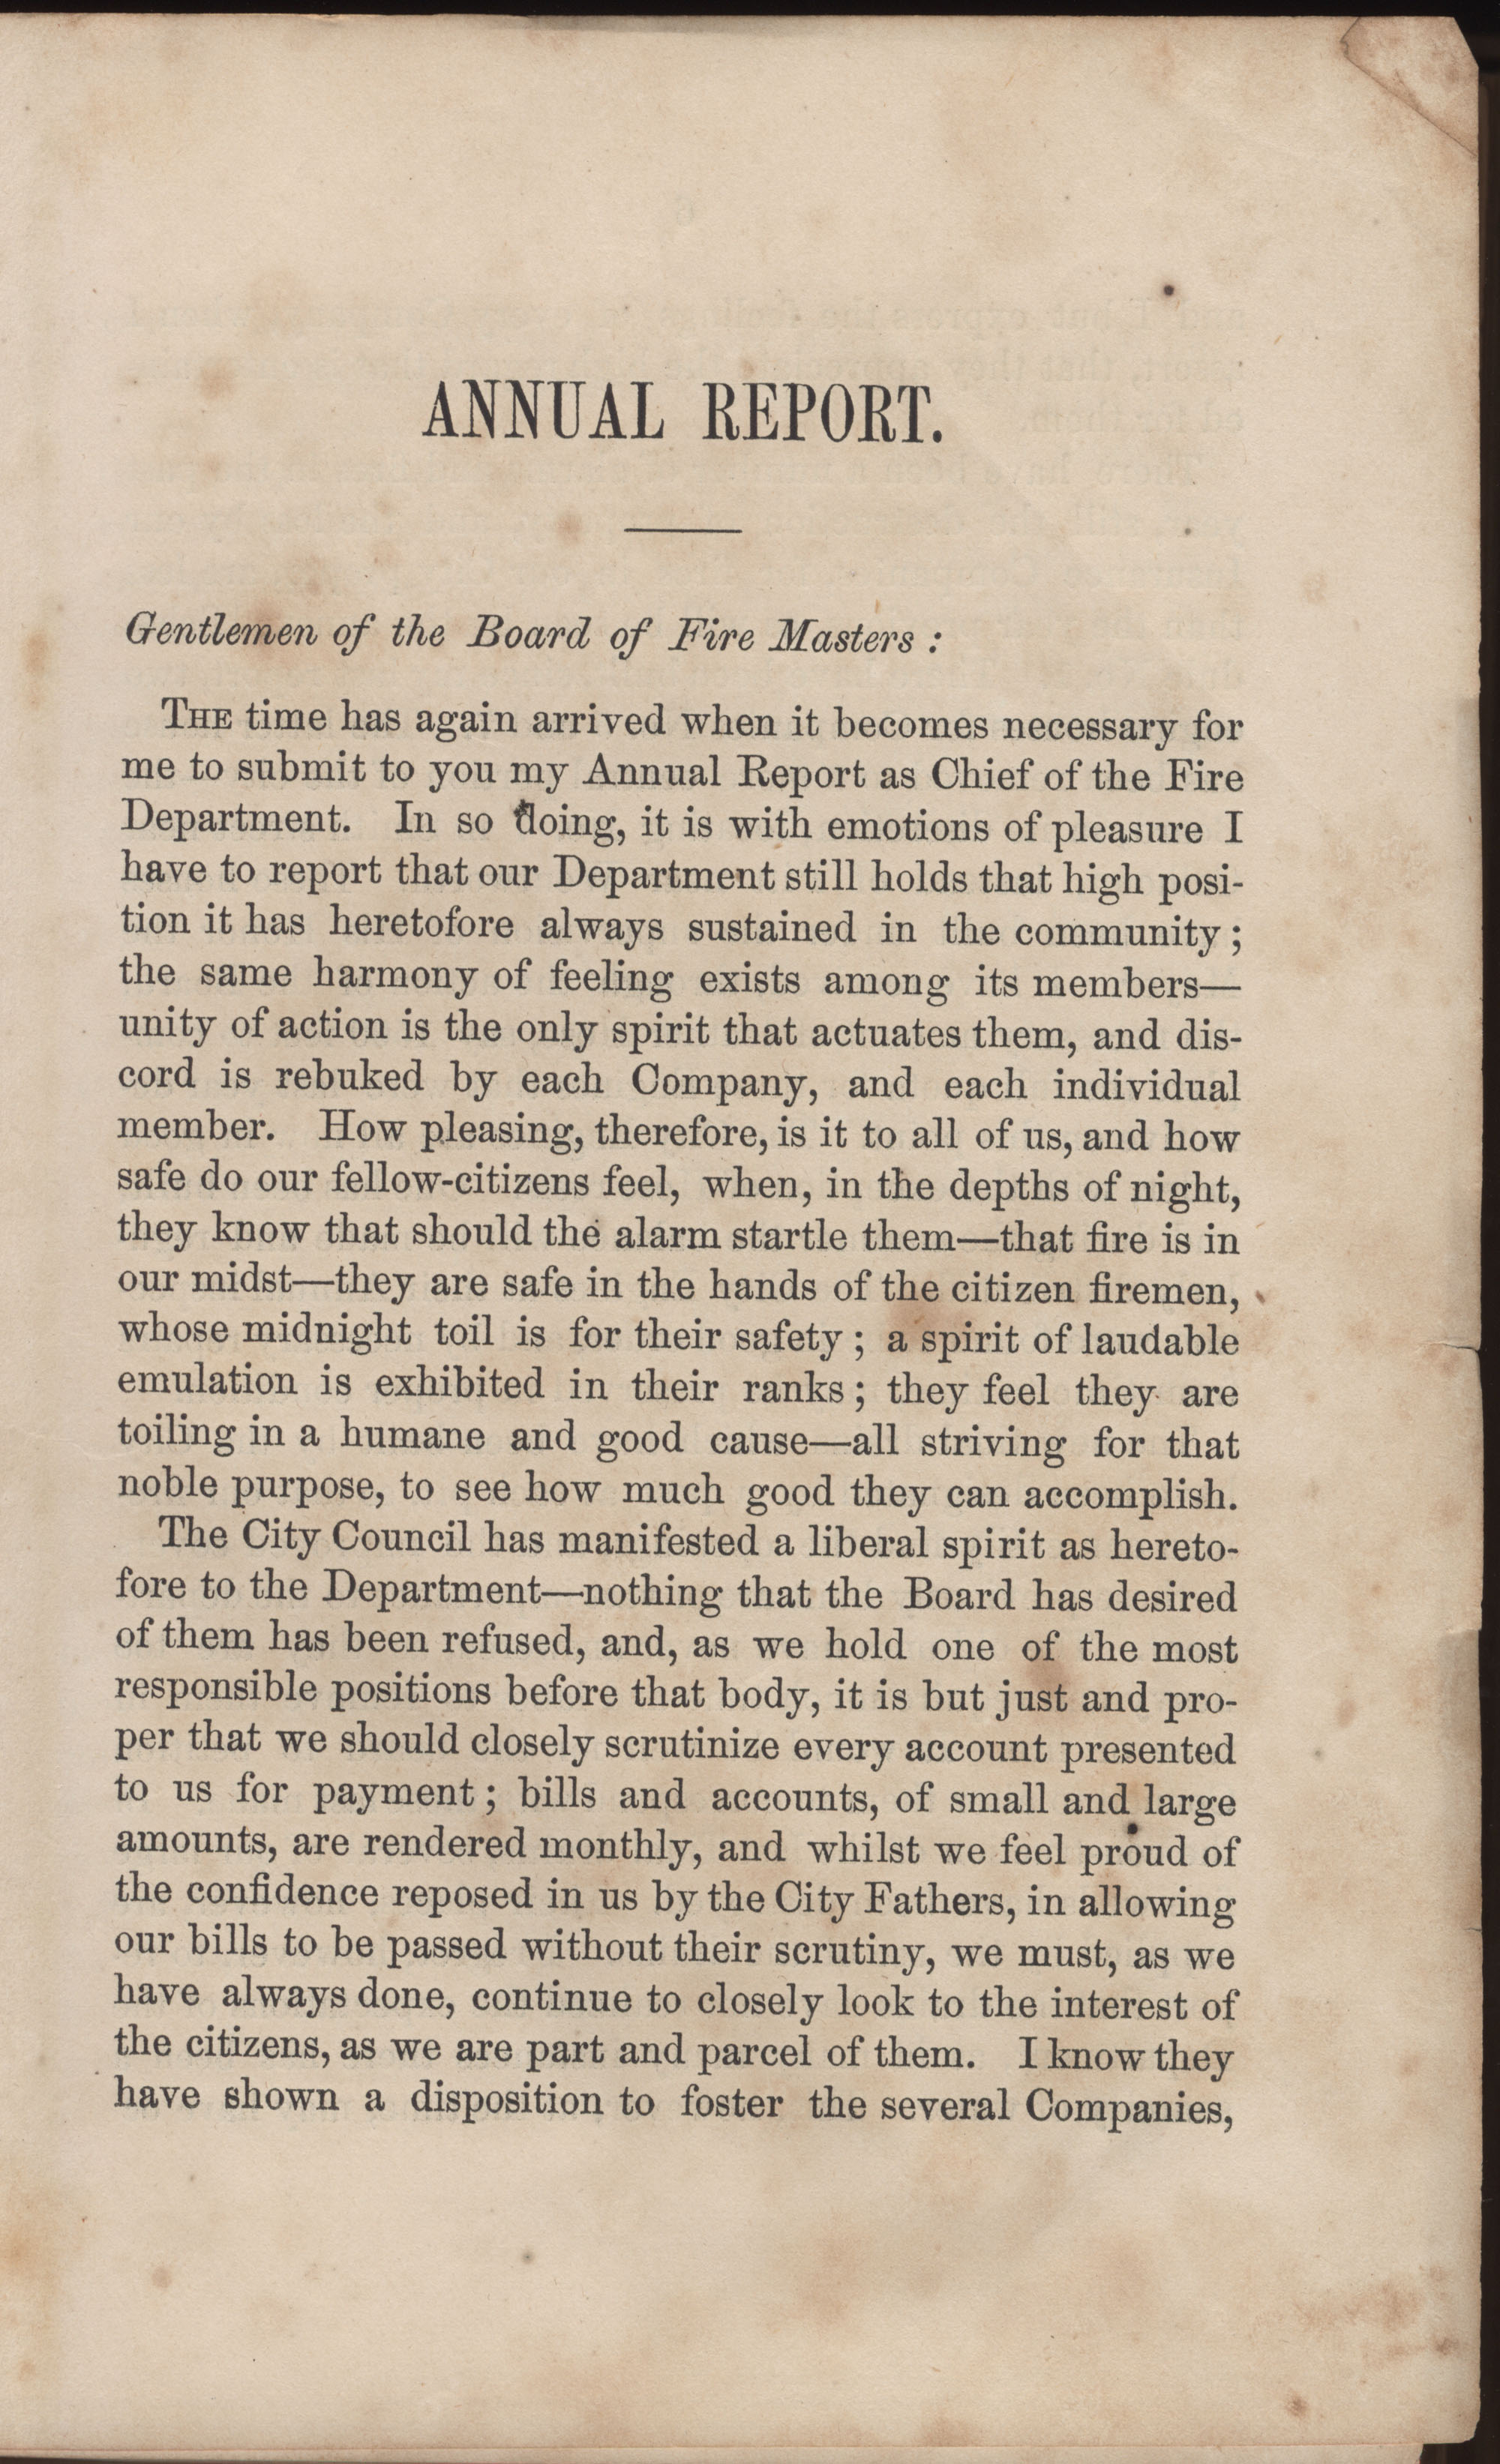 Annual Report of the Chief of the Fire Department of the City of Charleston, page 31